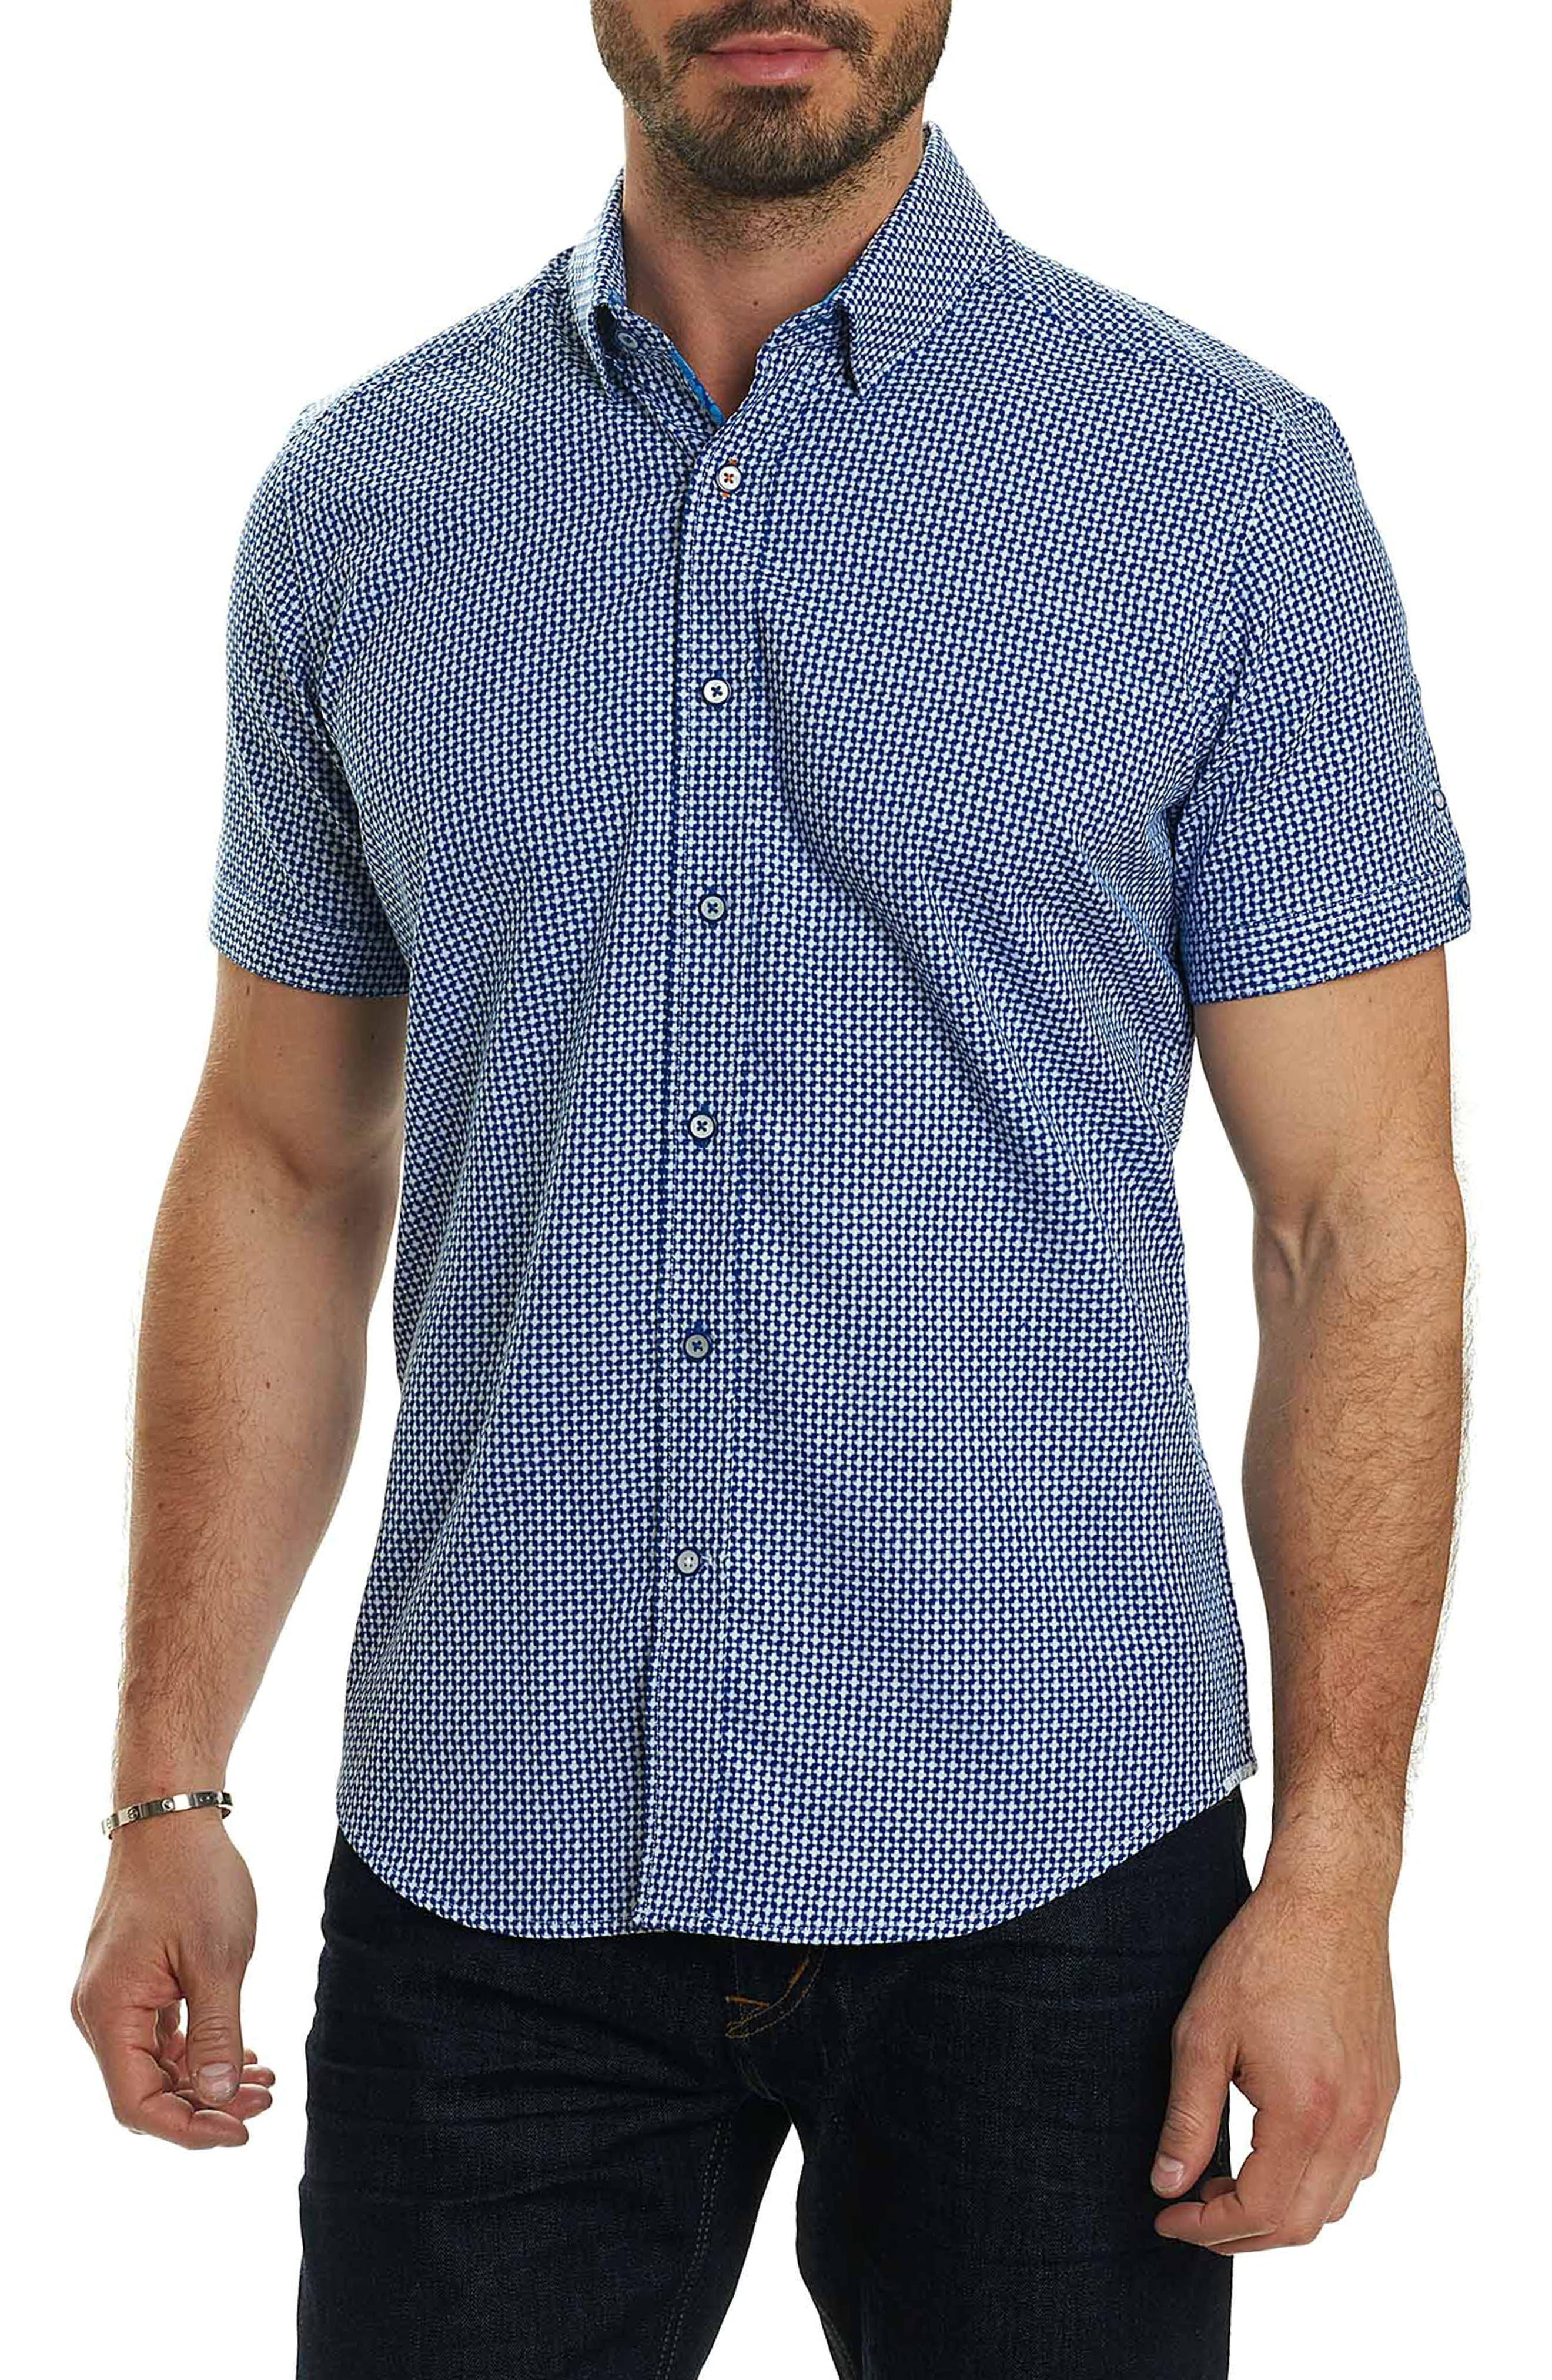 Main Image - Robert Graham Nikko Tailored Fit Print Sport Shirt